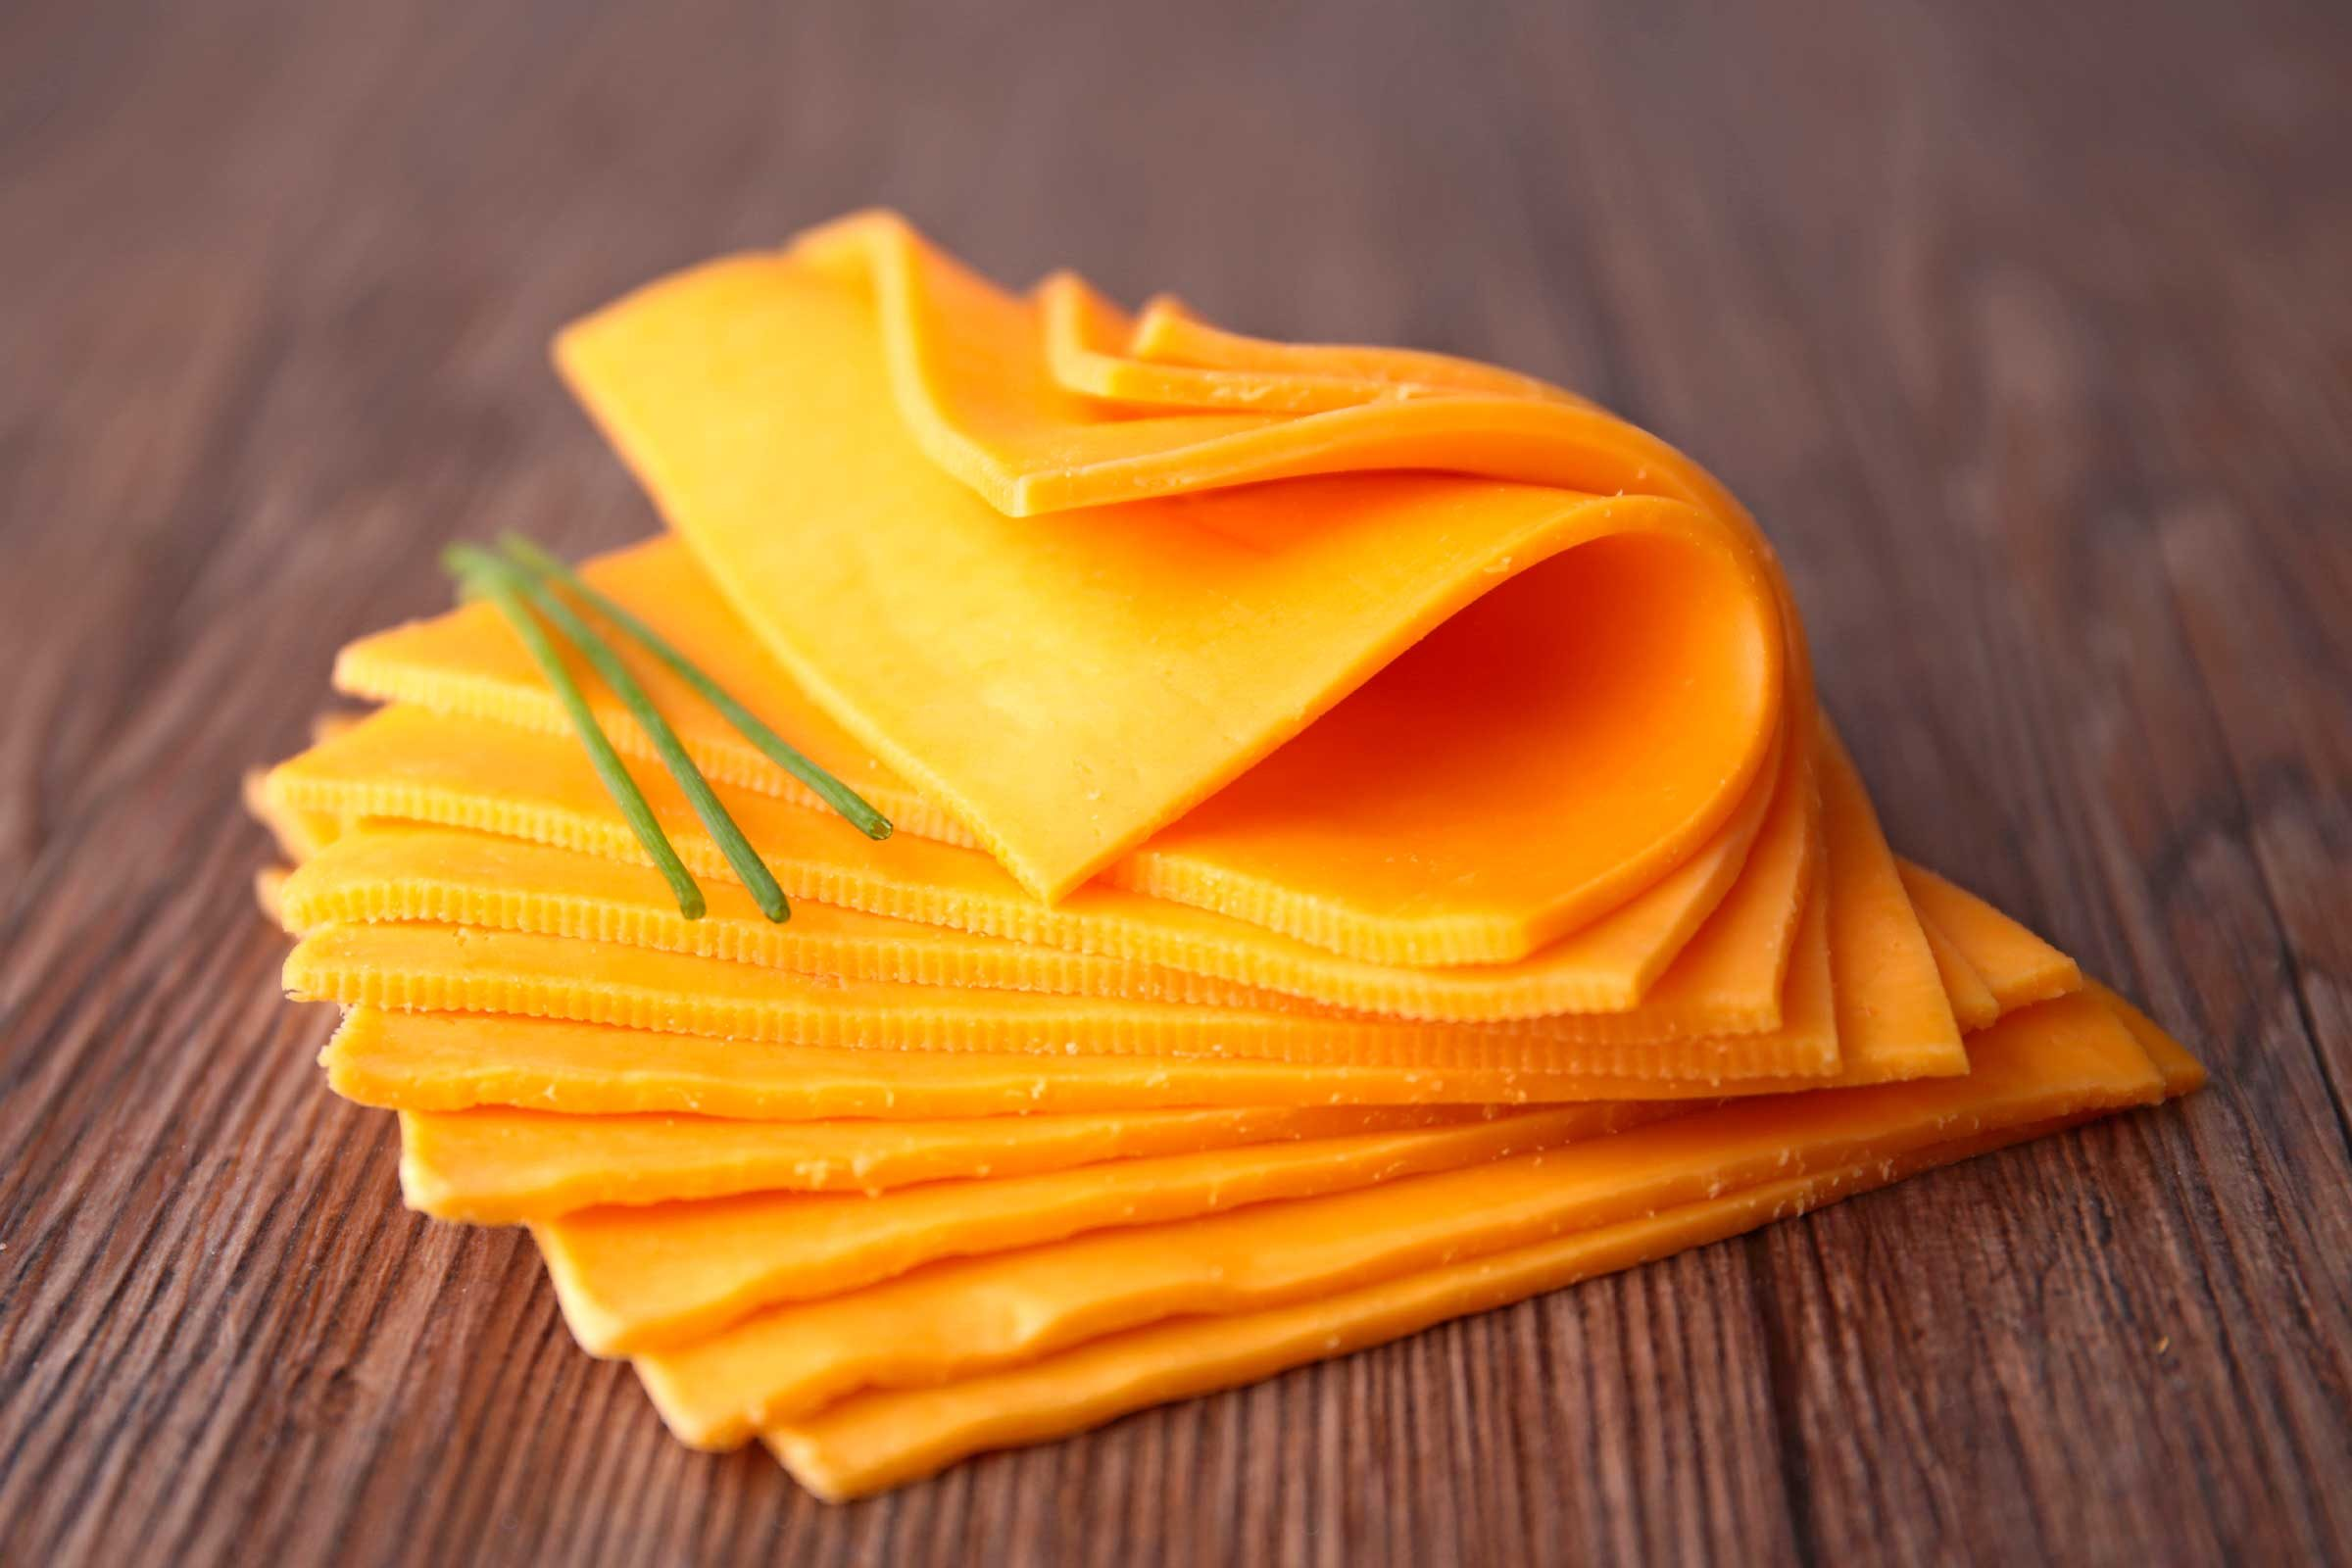 processed cheese and kraft foods The kraft heinz company provides high quality, great taste and nutrition for all eating occasions whether at home, in restaurants or on the go.